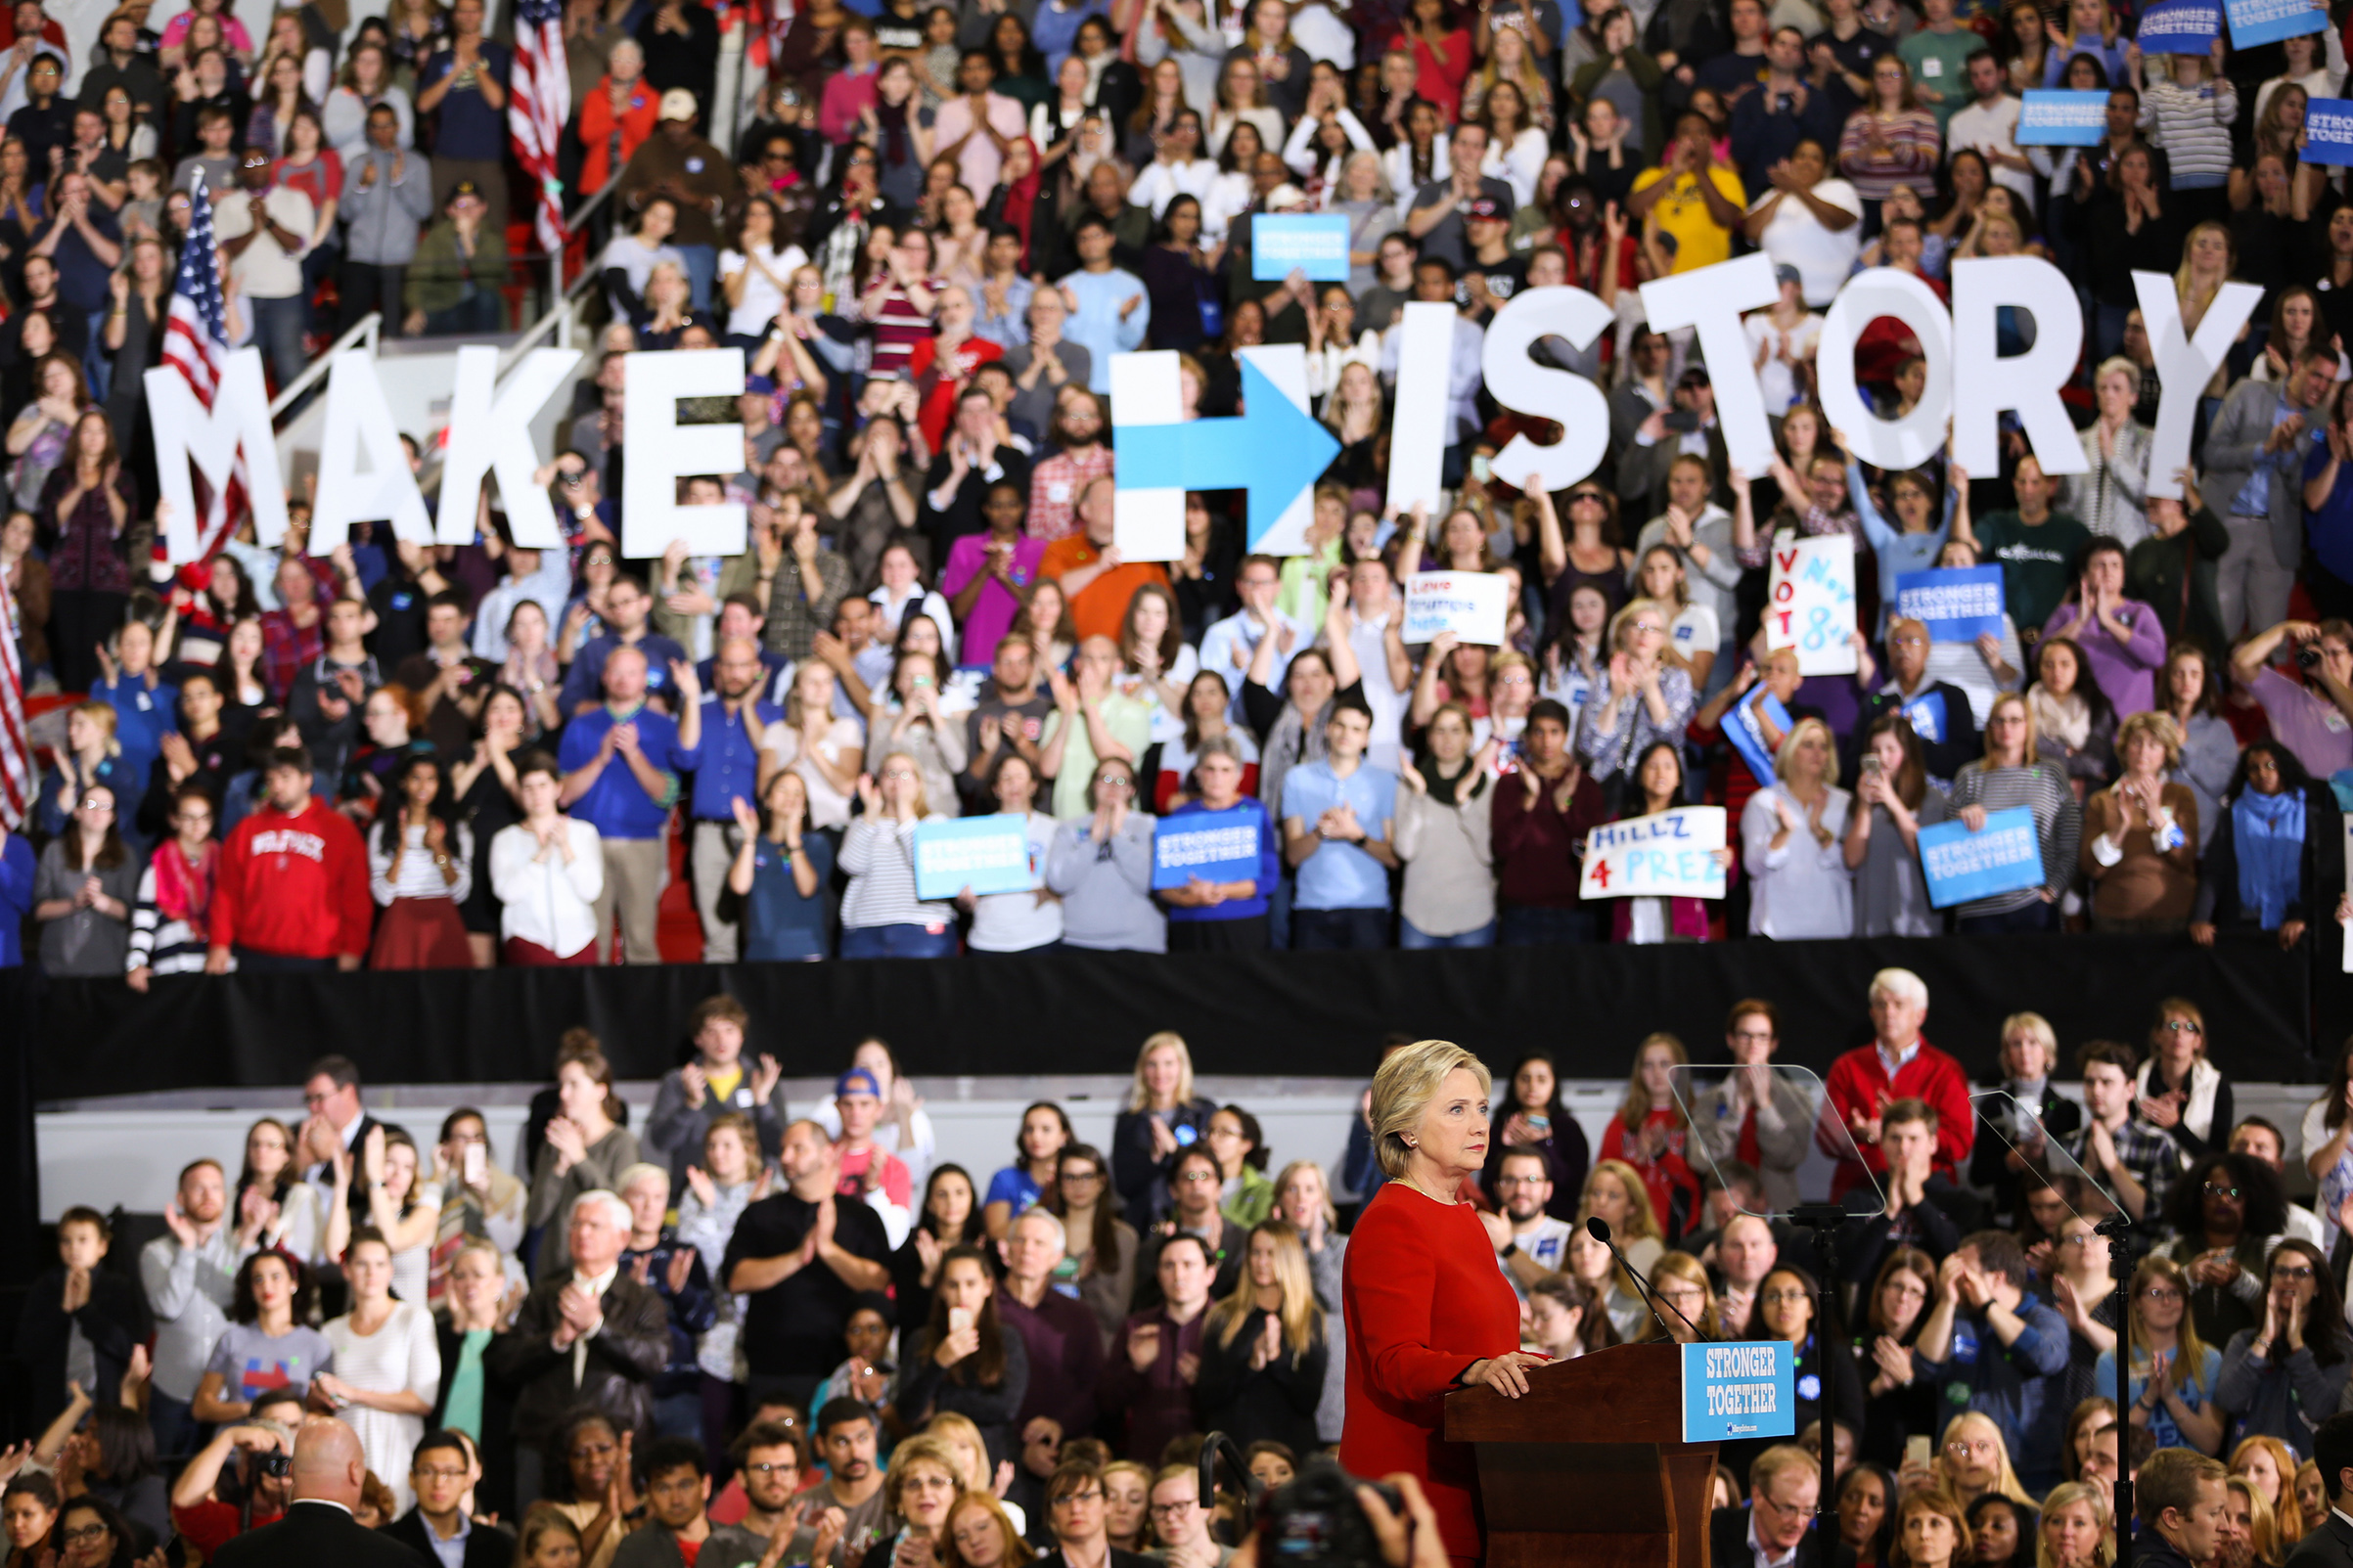 Hillary Clinton addresses the crowd of supporters inside the Reynolds Coliseum on the campus of North Carolina State University on the final campaign stop before election day, in Raleigh, N.C., on Nov. 7, 2016.